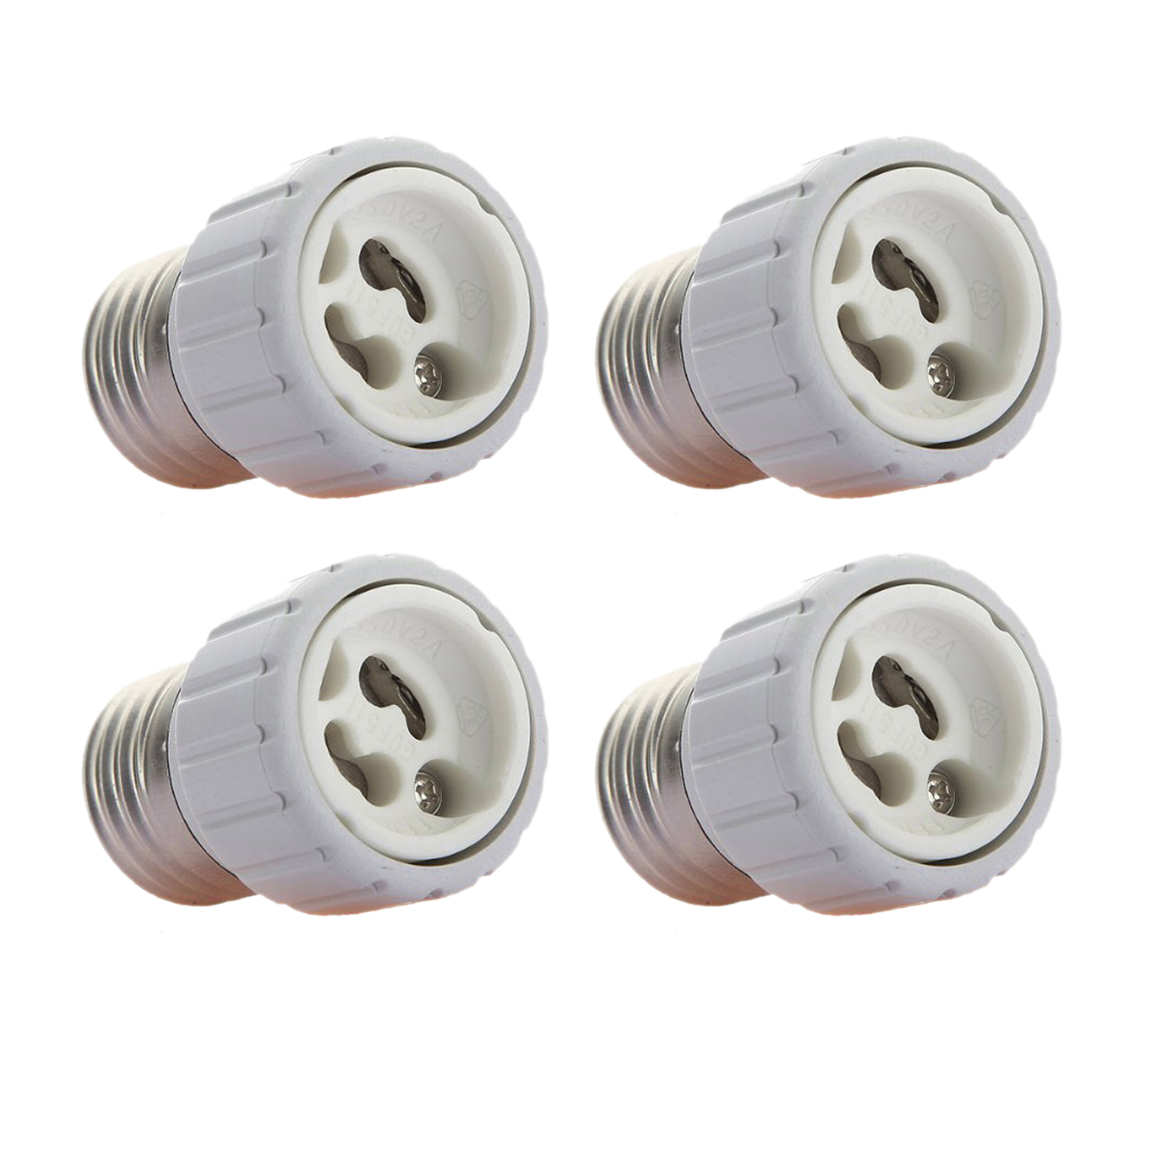 DHDL-4x E27 to GU10 LED light socket adapter socket adapter lamp bulb Converter White